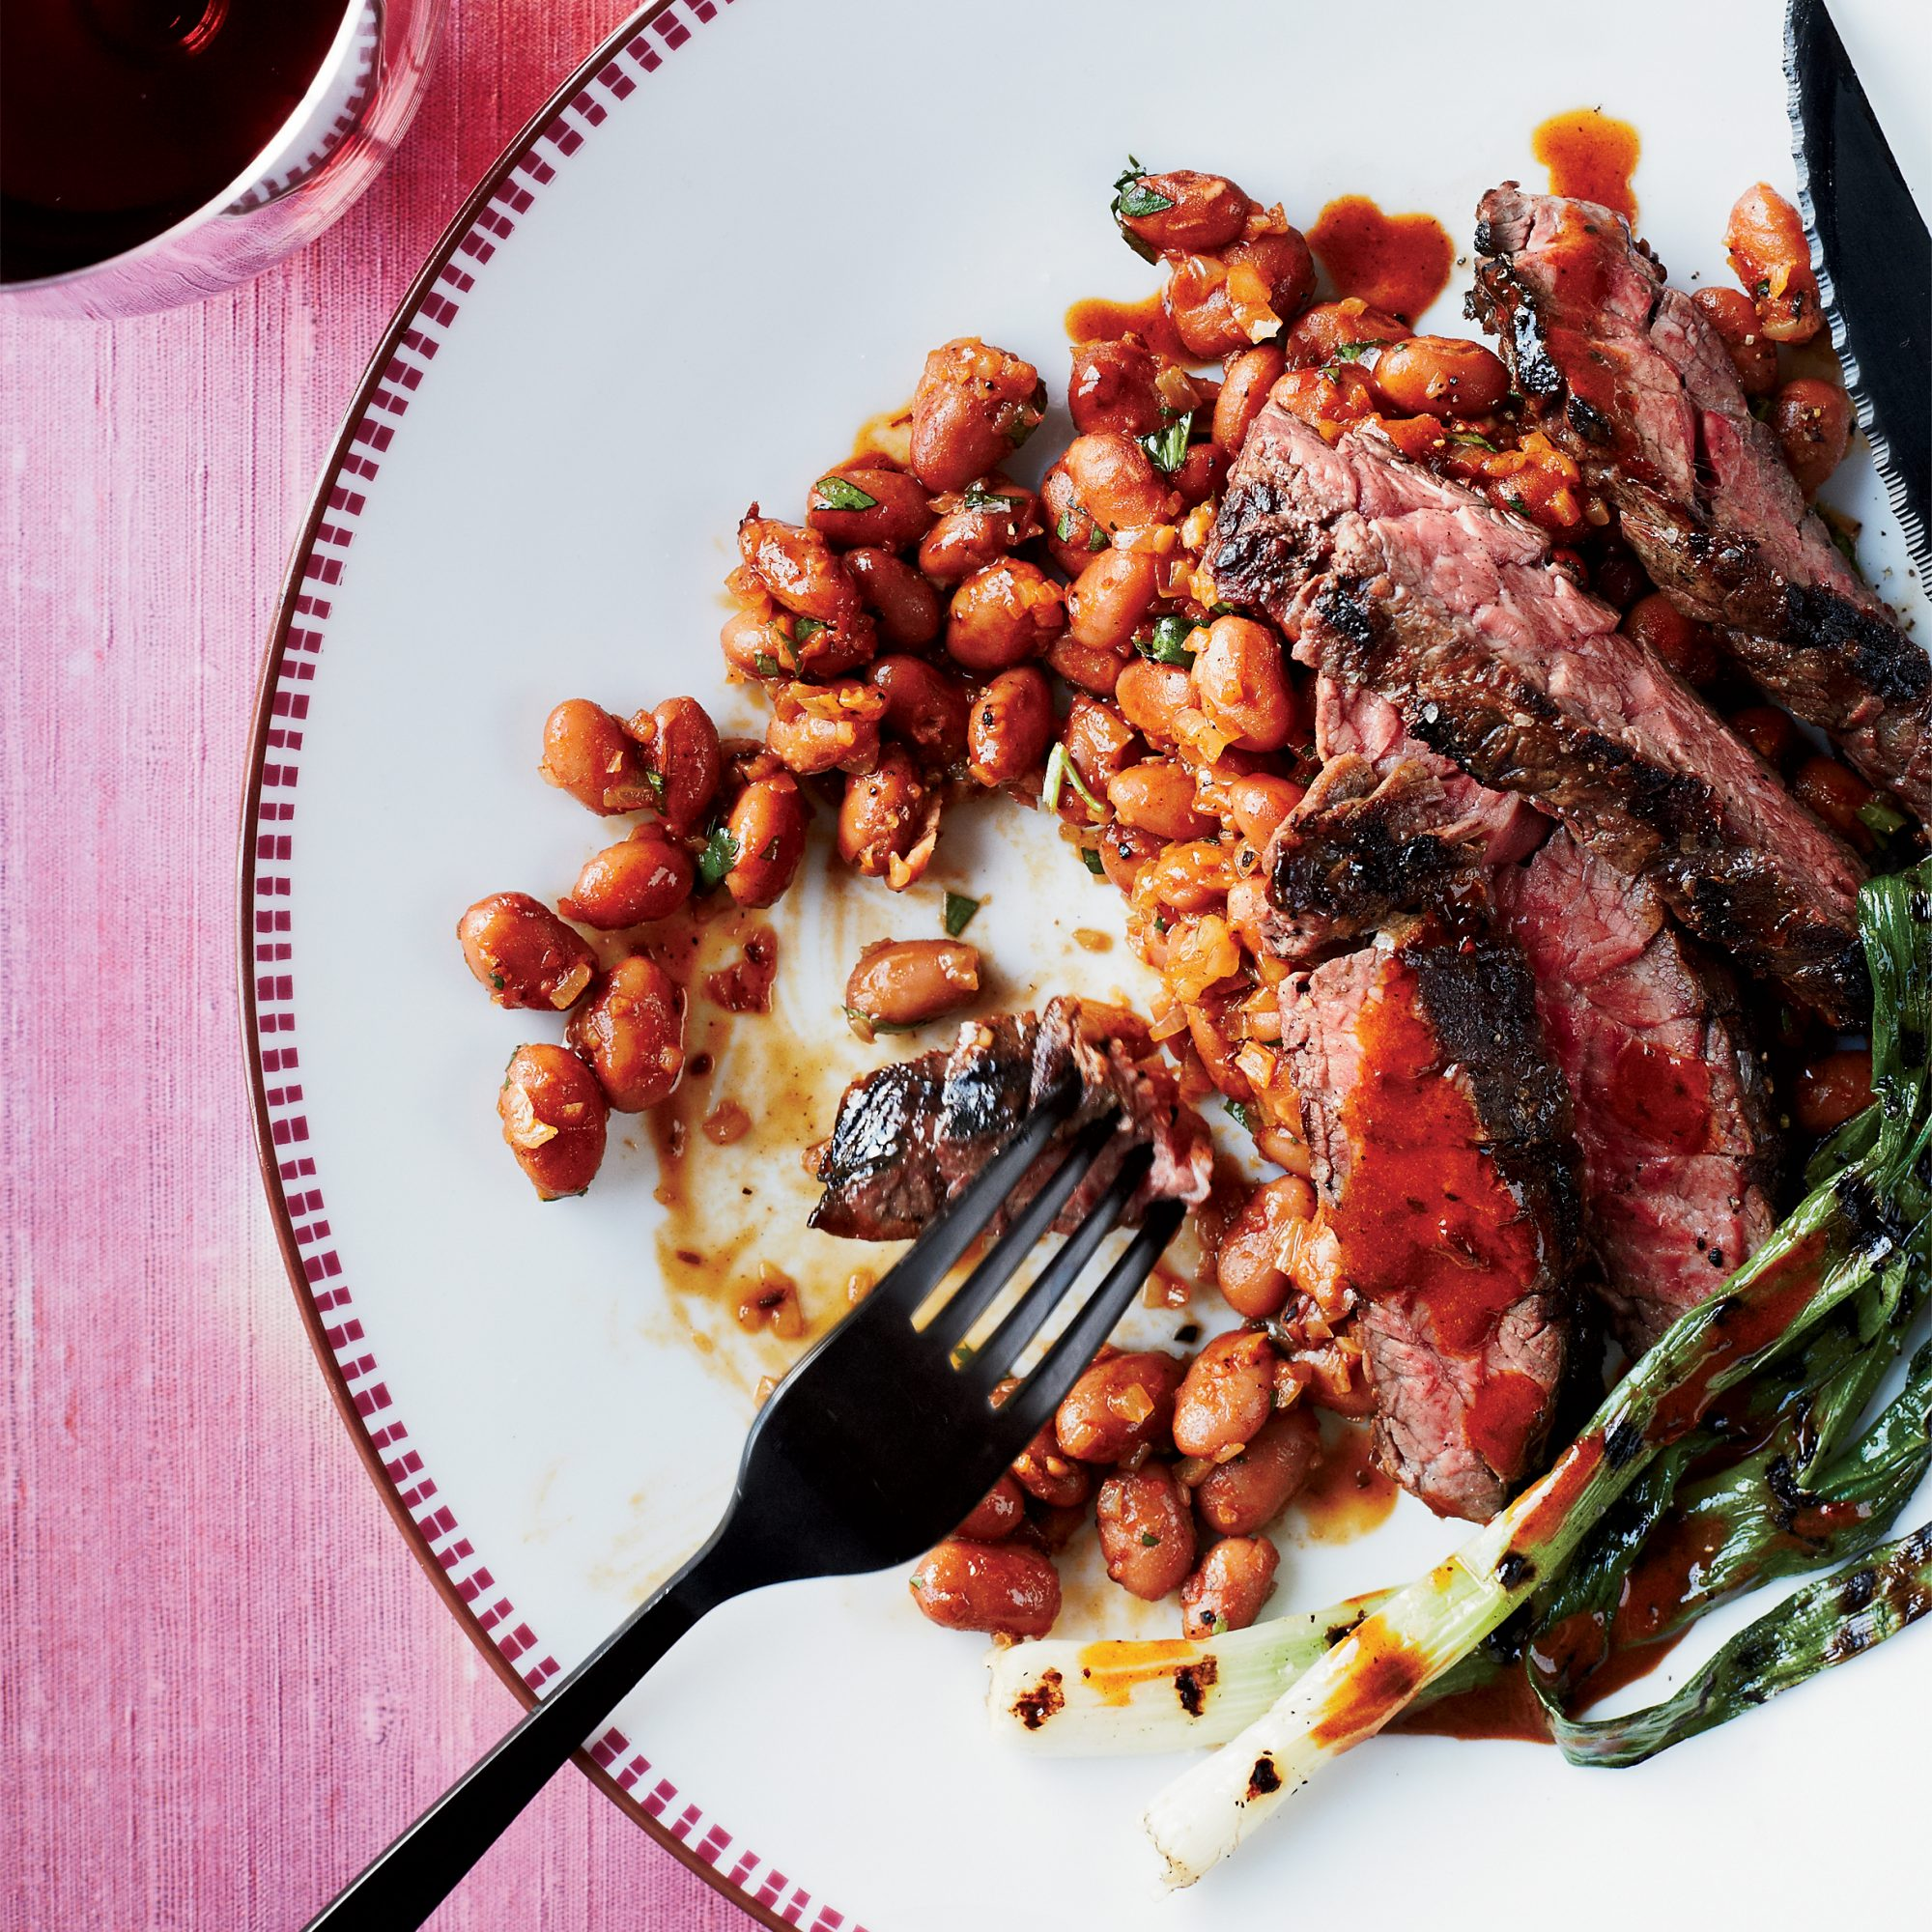 201404-r-skirt-steak-with-pinto-beans-and-pasilla-chile-vinaigrette.jpg